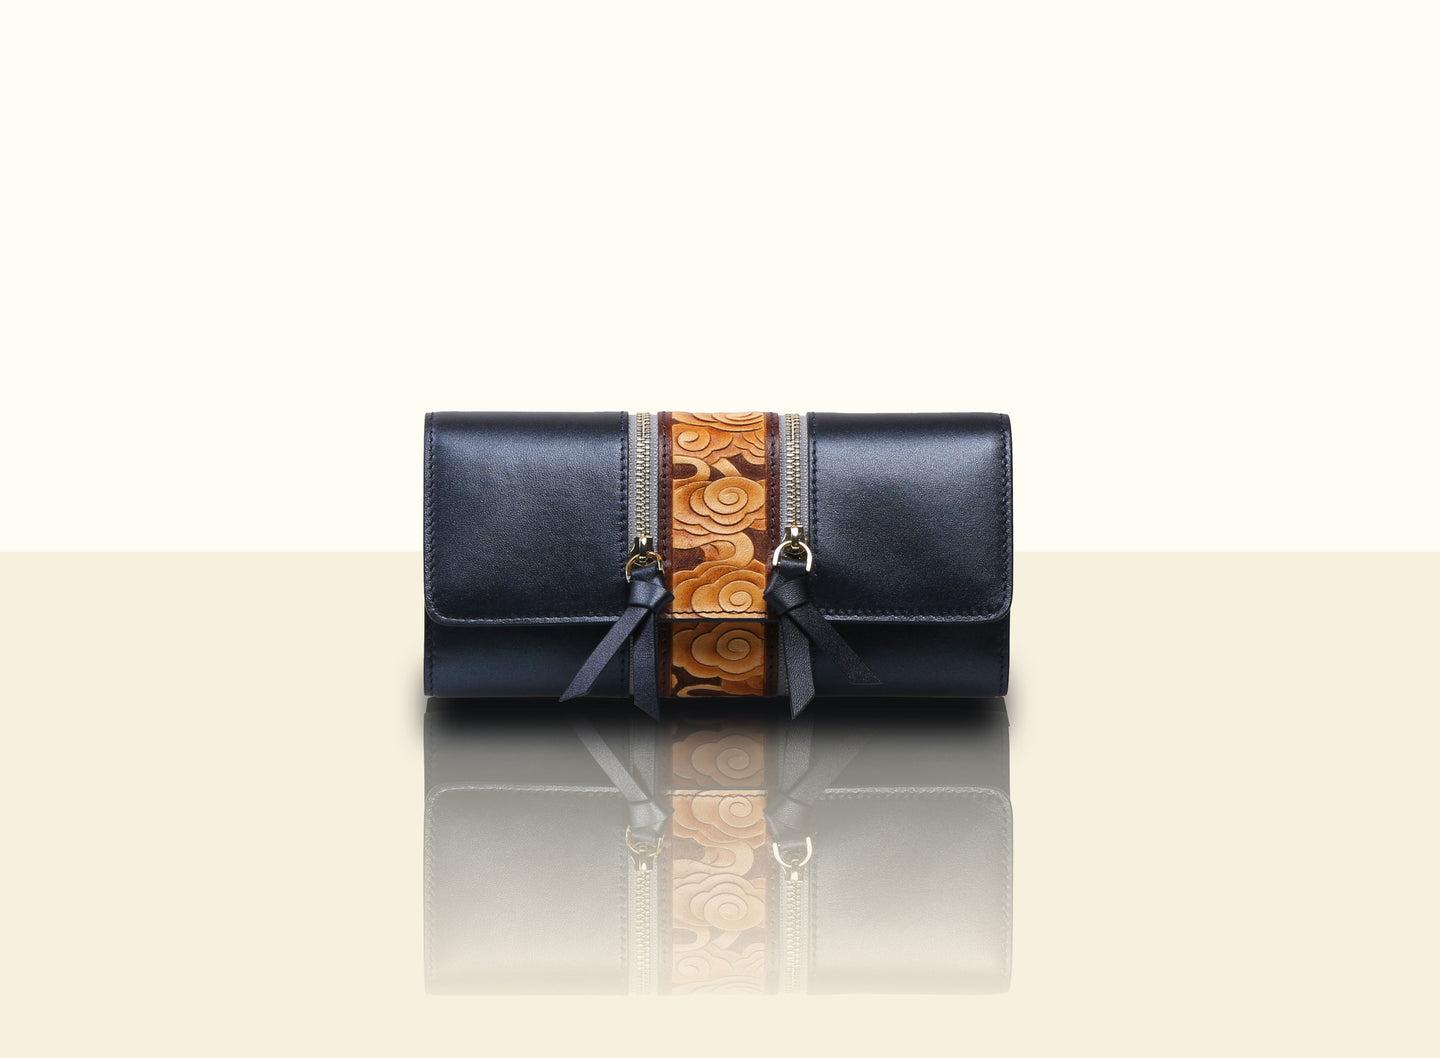 Glorious Clouds Wallet - Metallic Blue and Brown